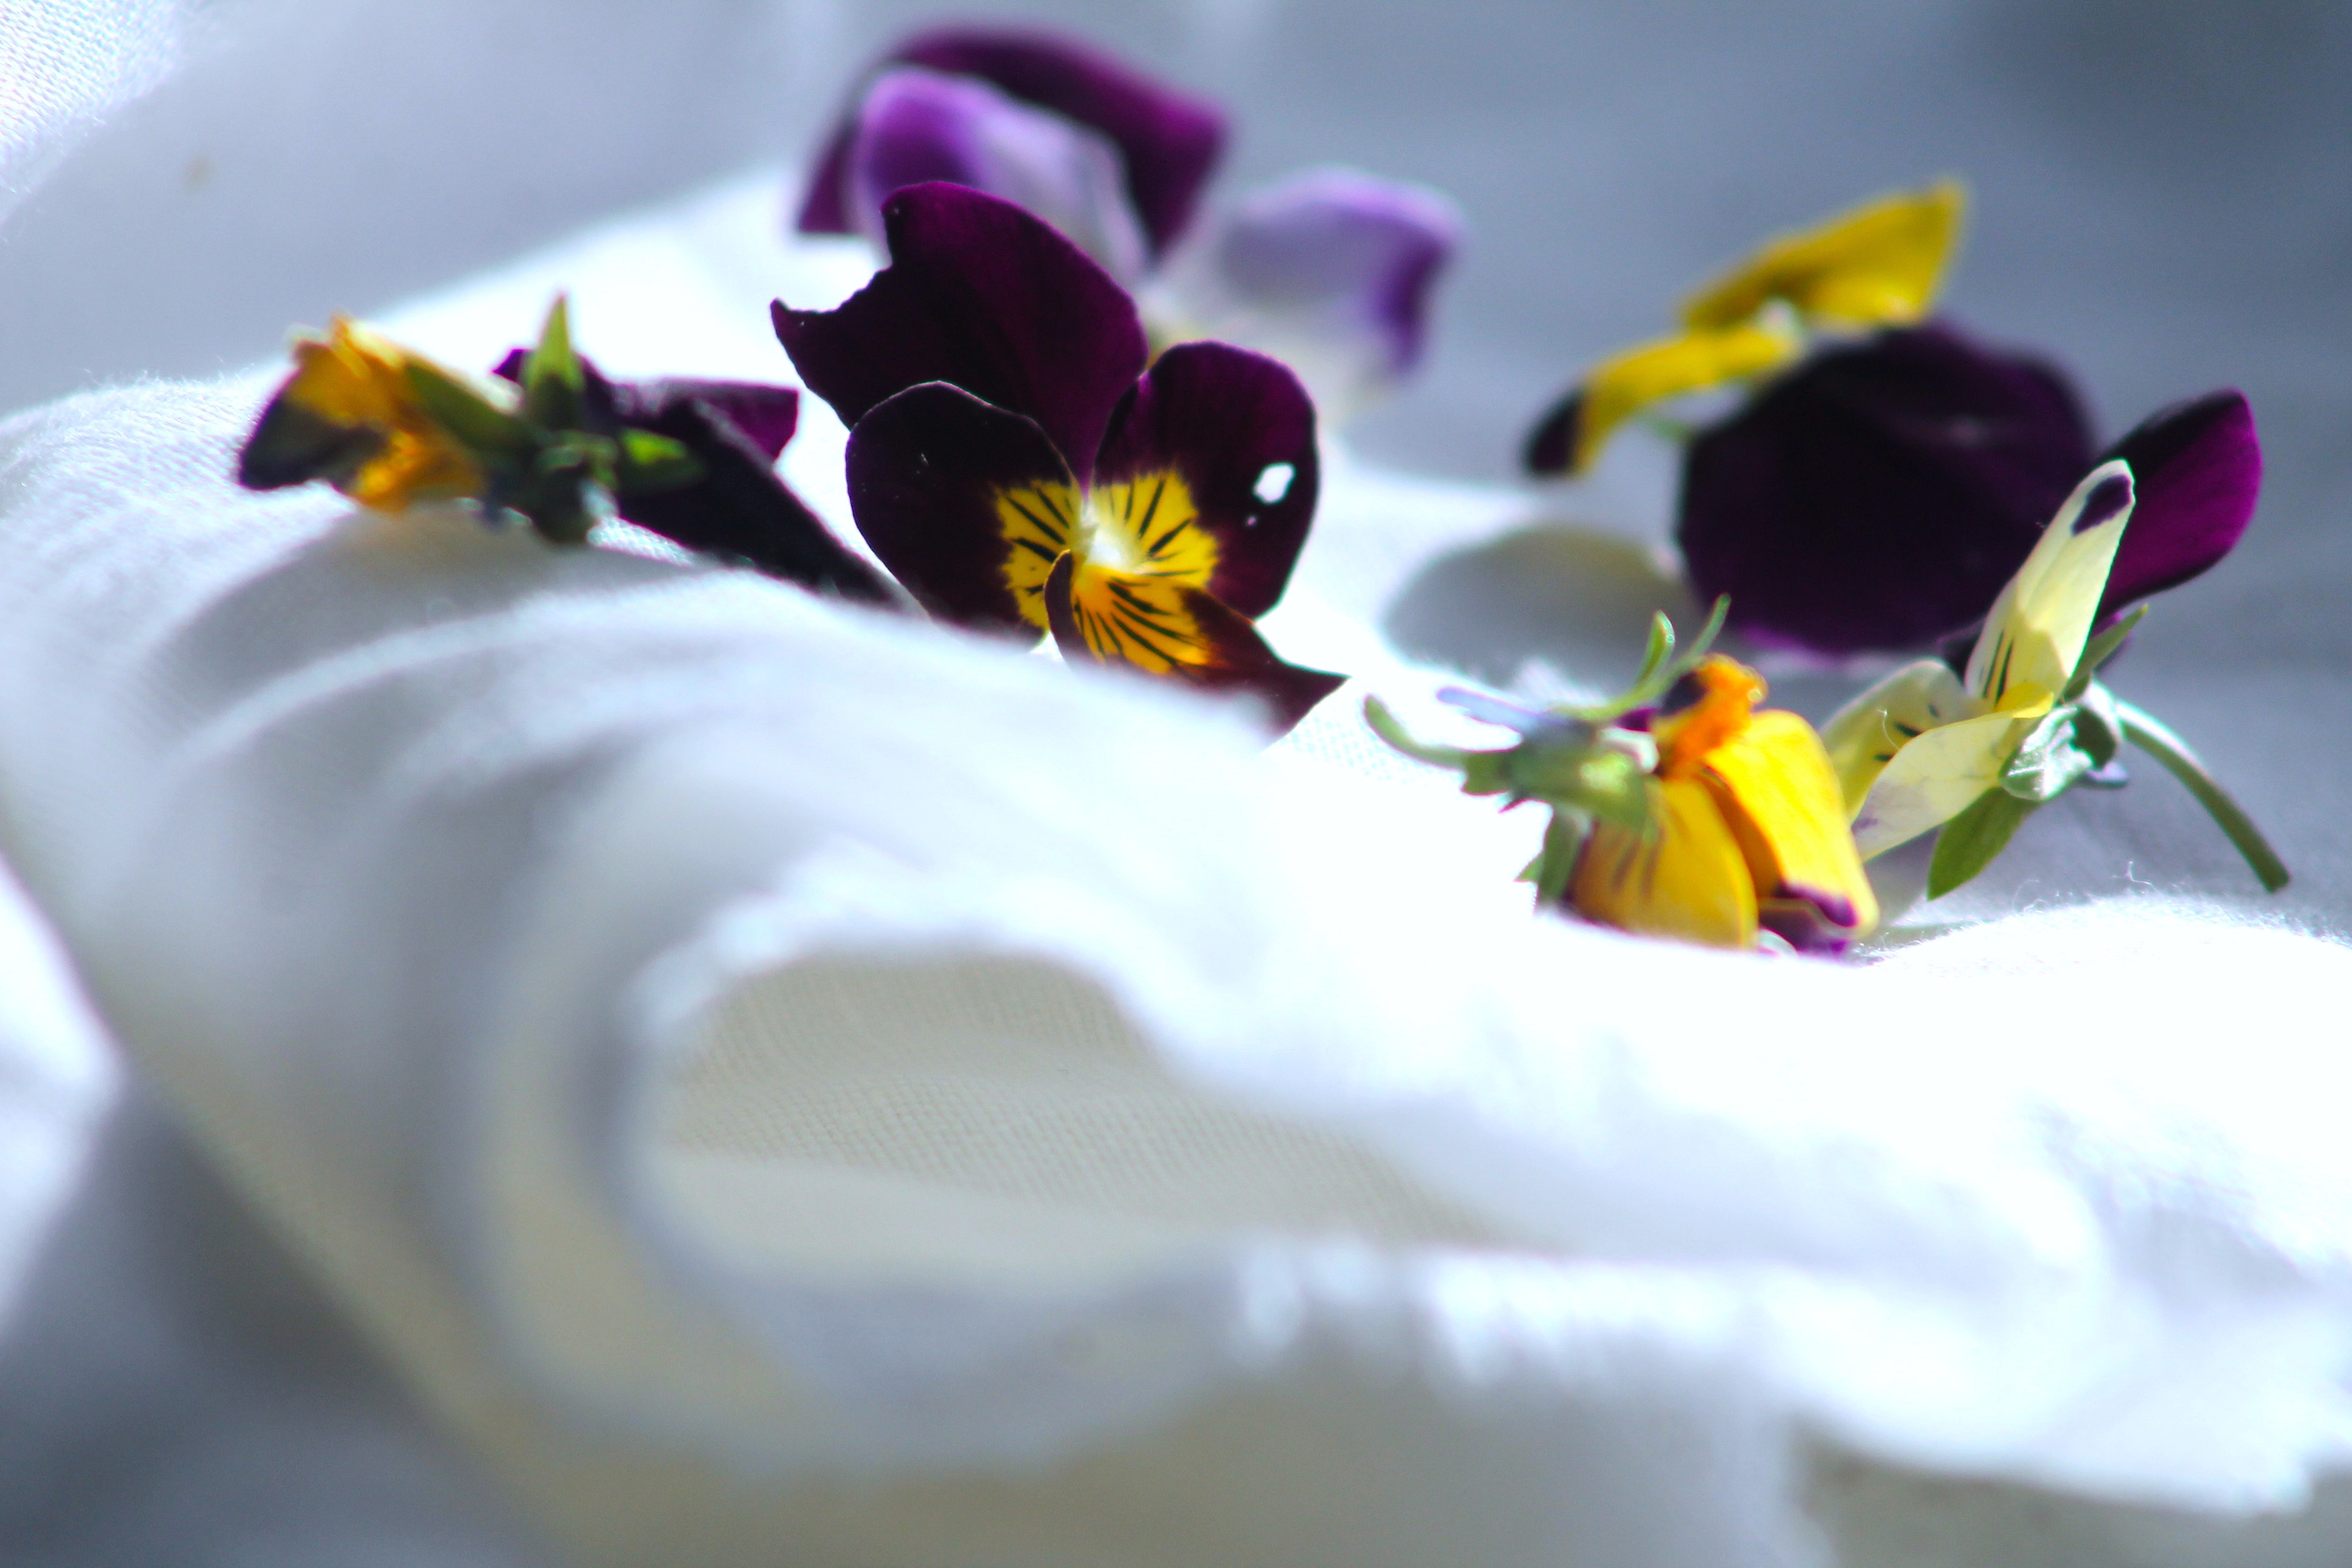 yellow pansies and purple violets on white linen